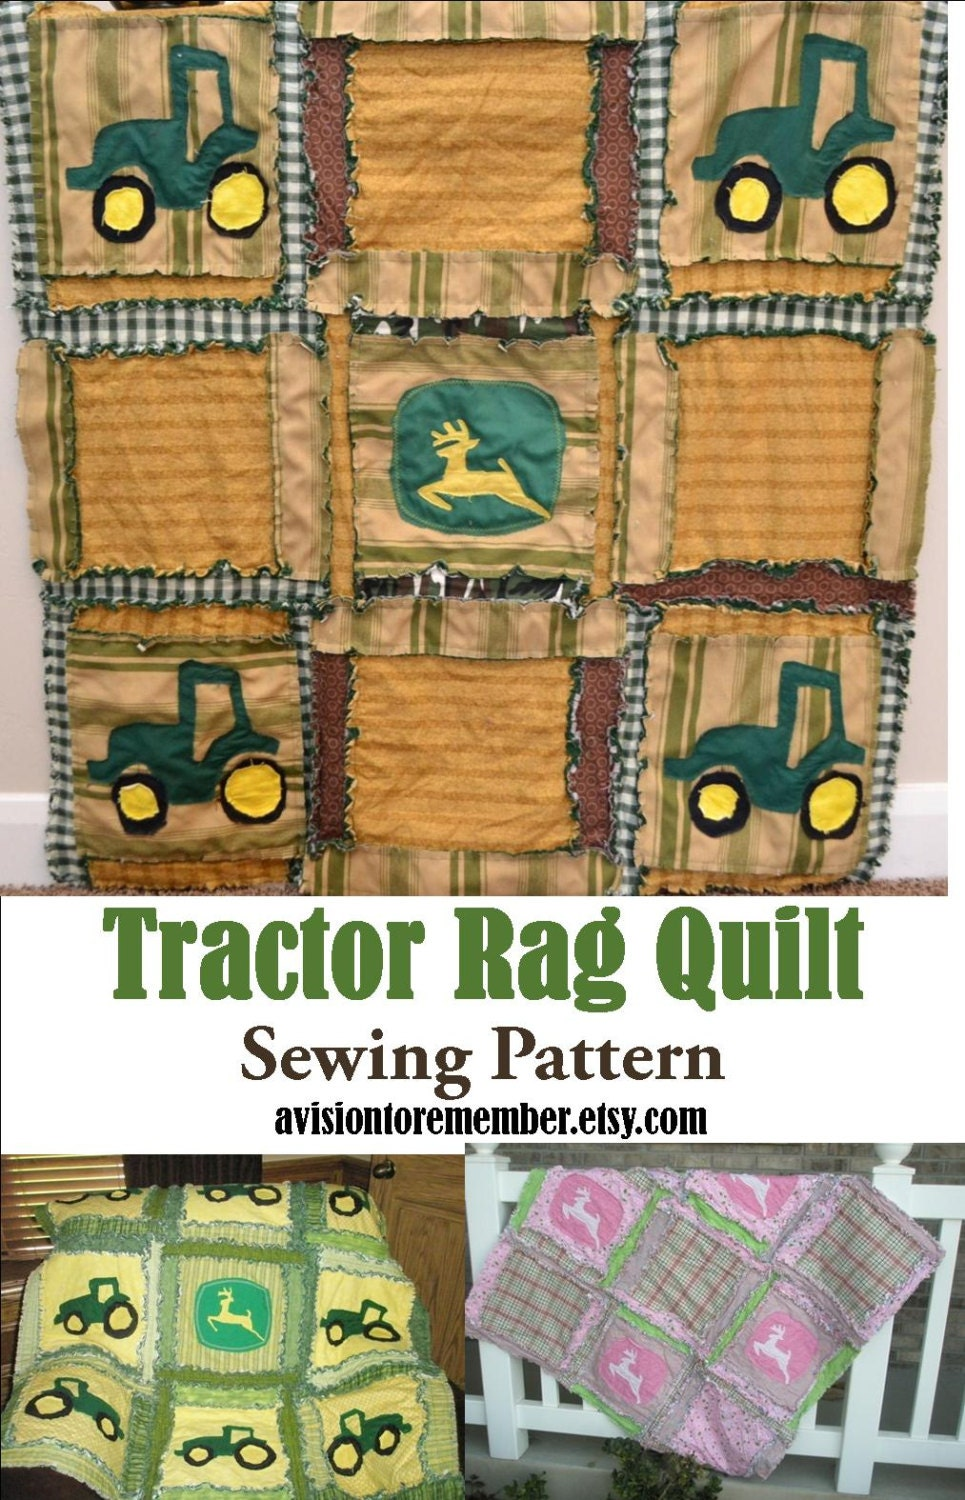 Tractor Rag Quilt PATTERN Baby Blanket SEWING by avisiontoremember